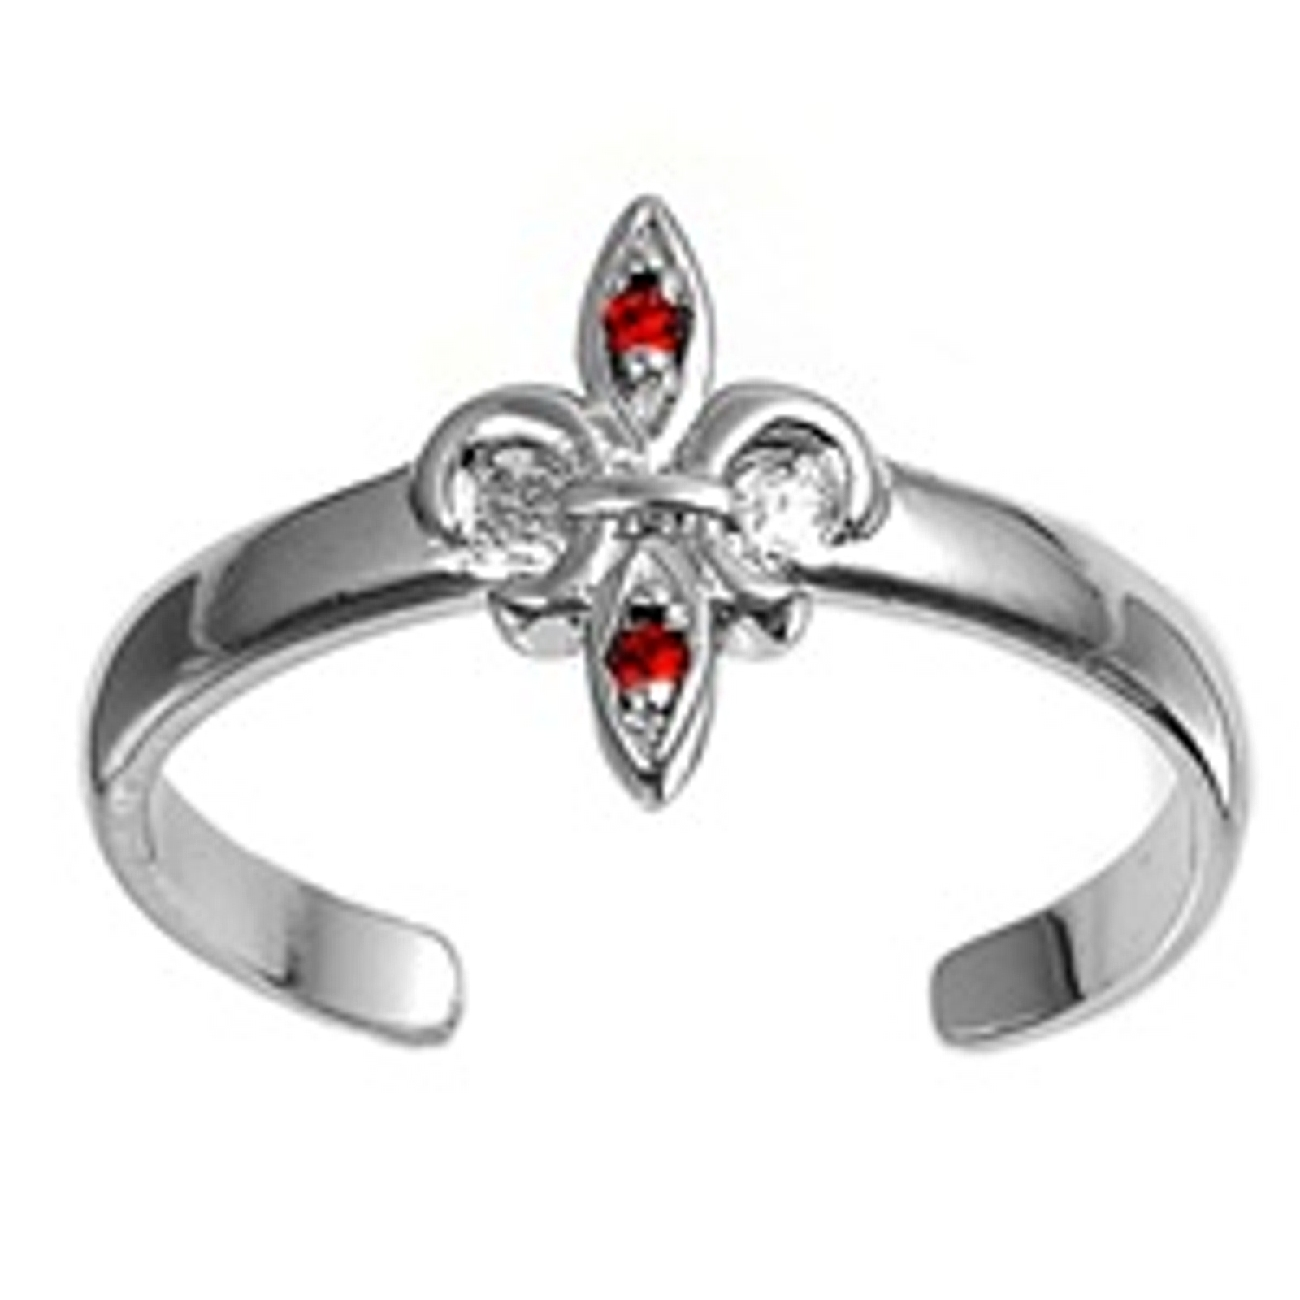 Fleur De Lis Ruby Red Cubic Zirconia Adjustable Toe Ring